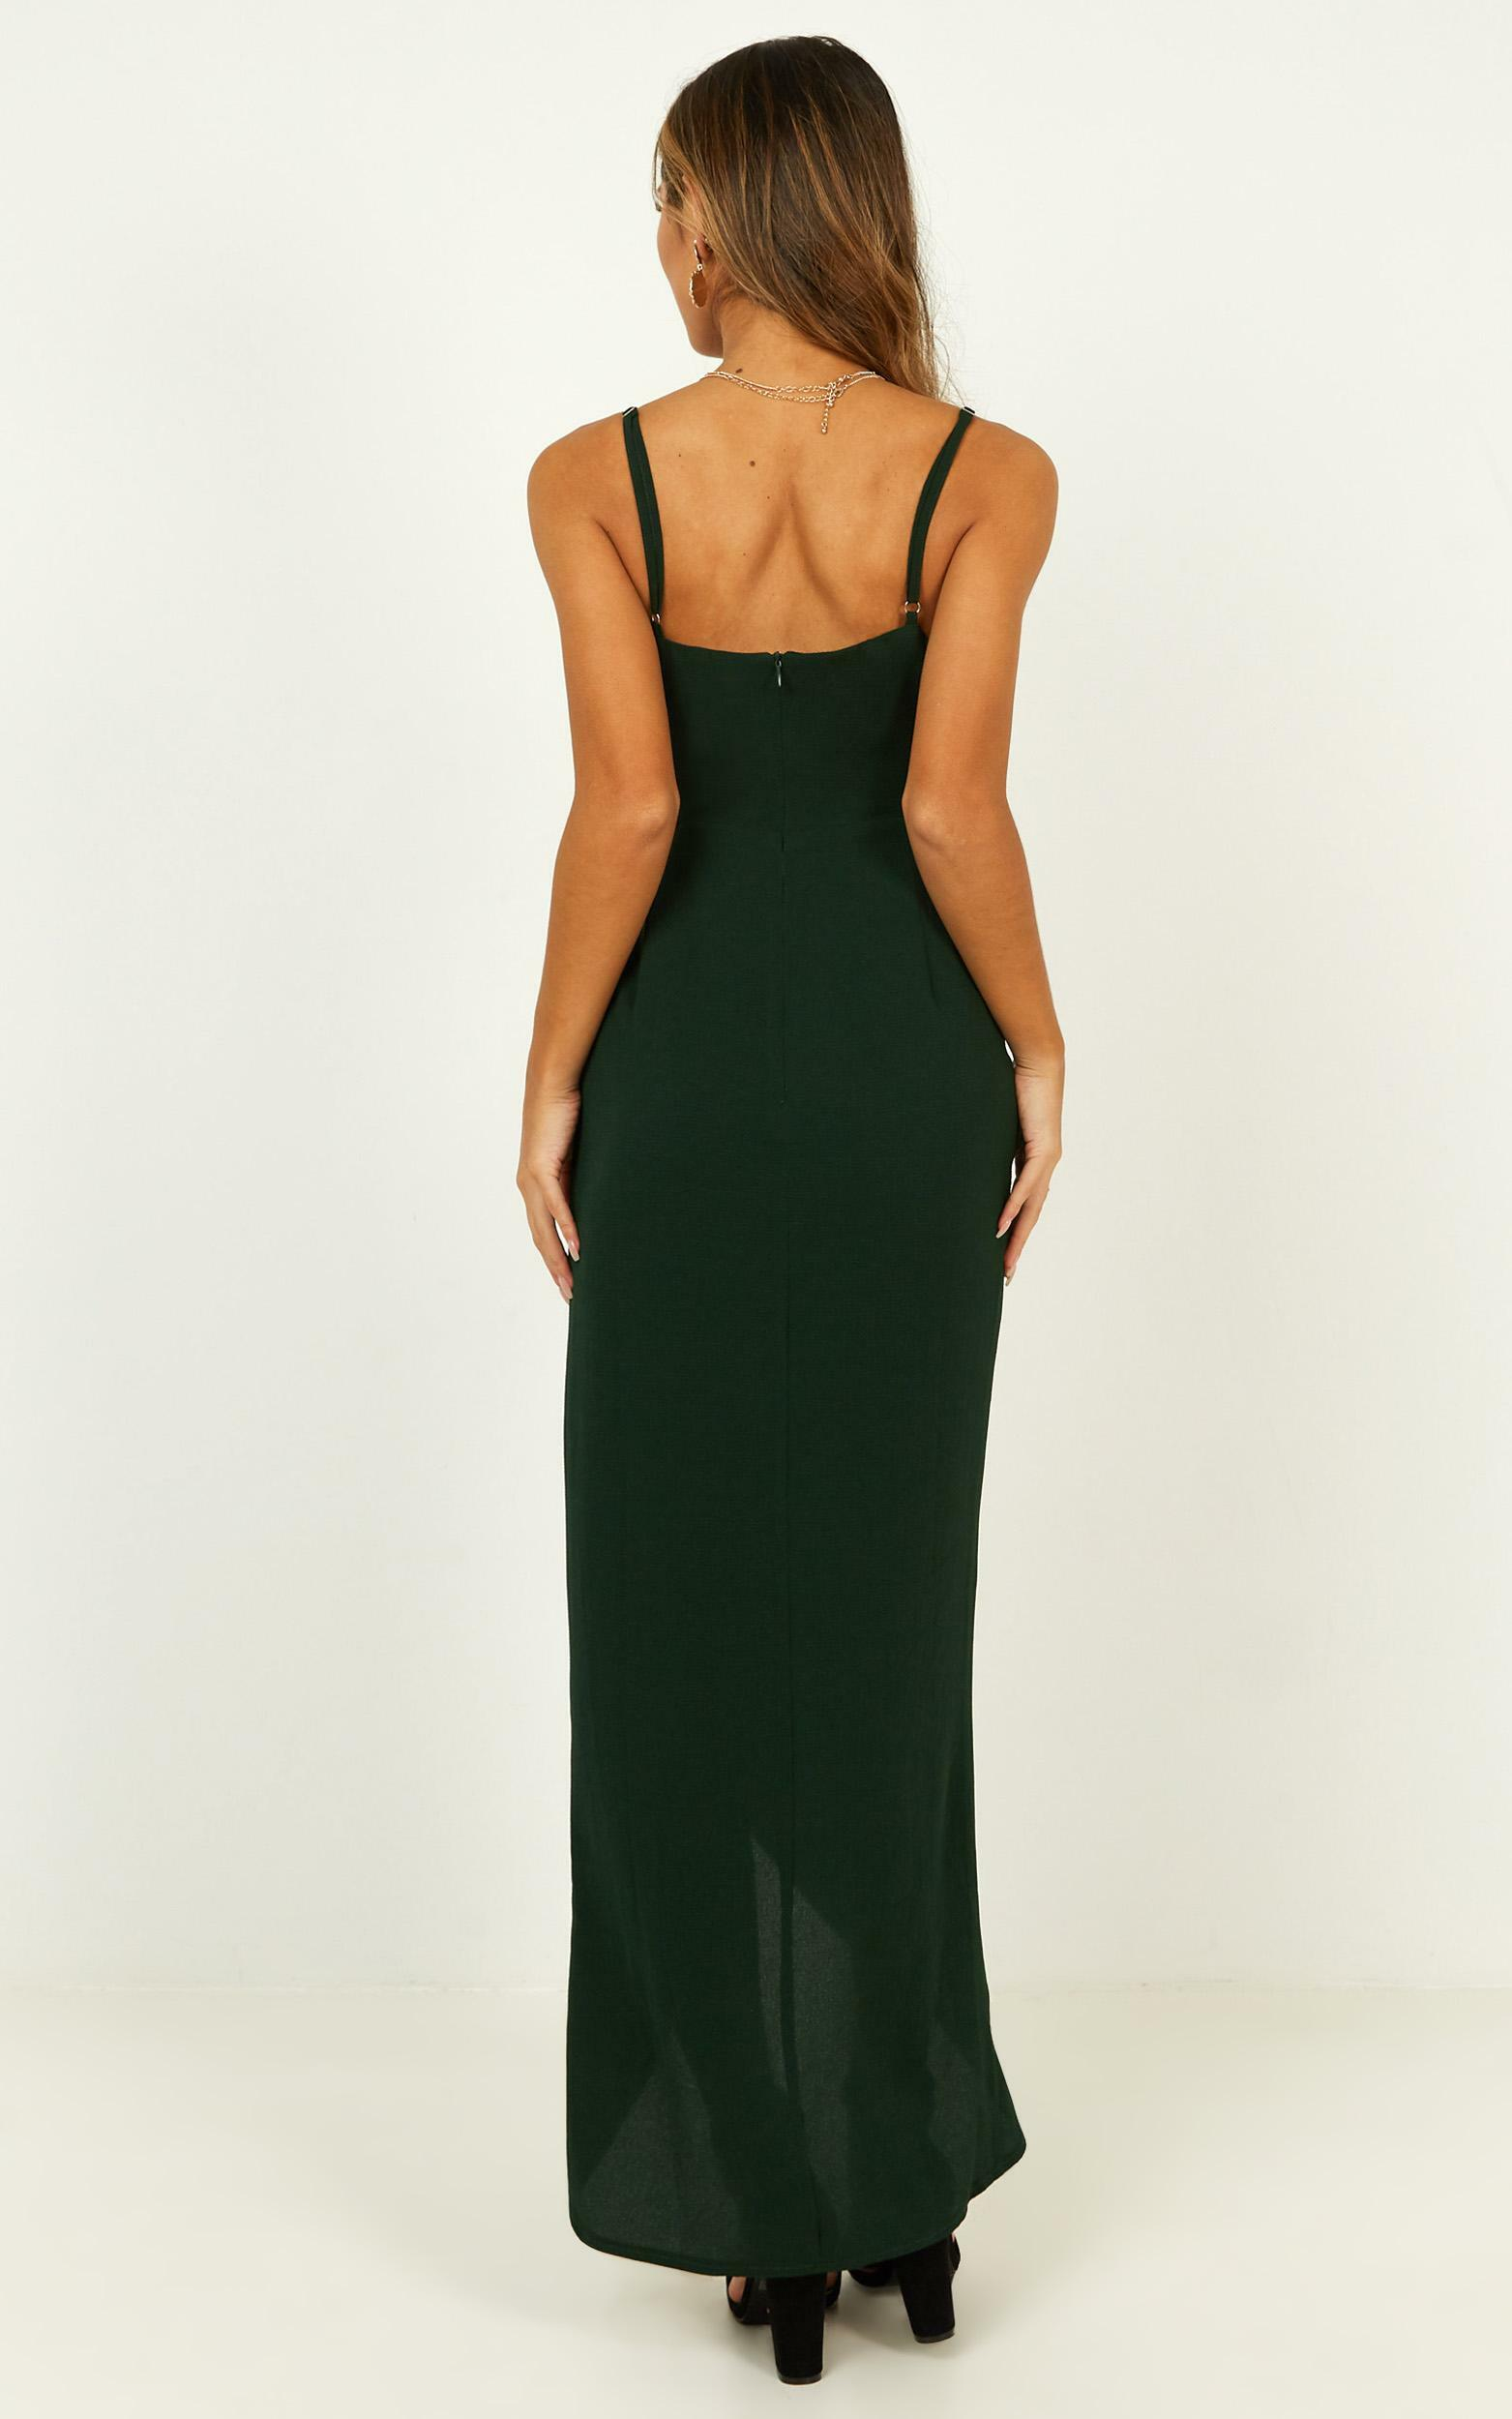 Gave Me You Dress in emerald - 14 (XL), Green, hi-res image number null